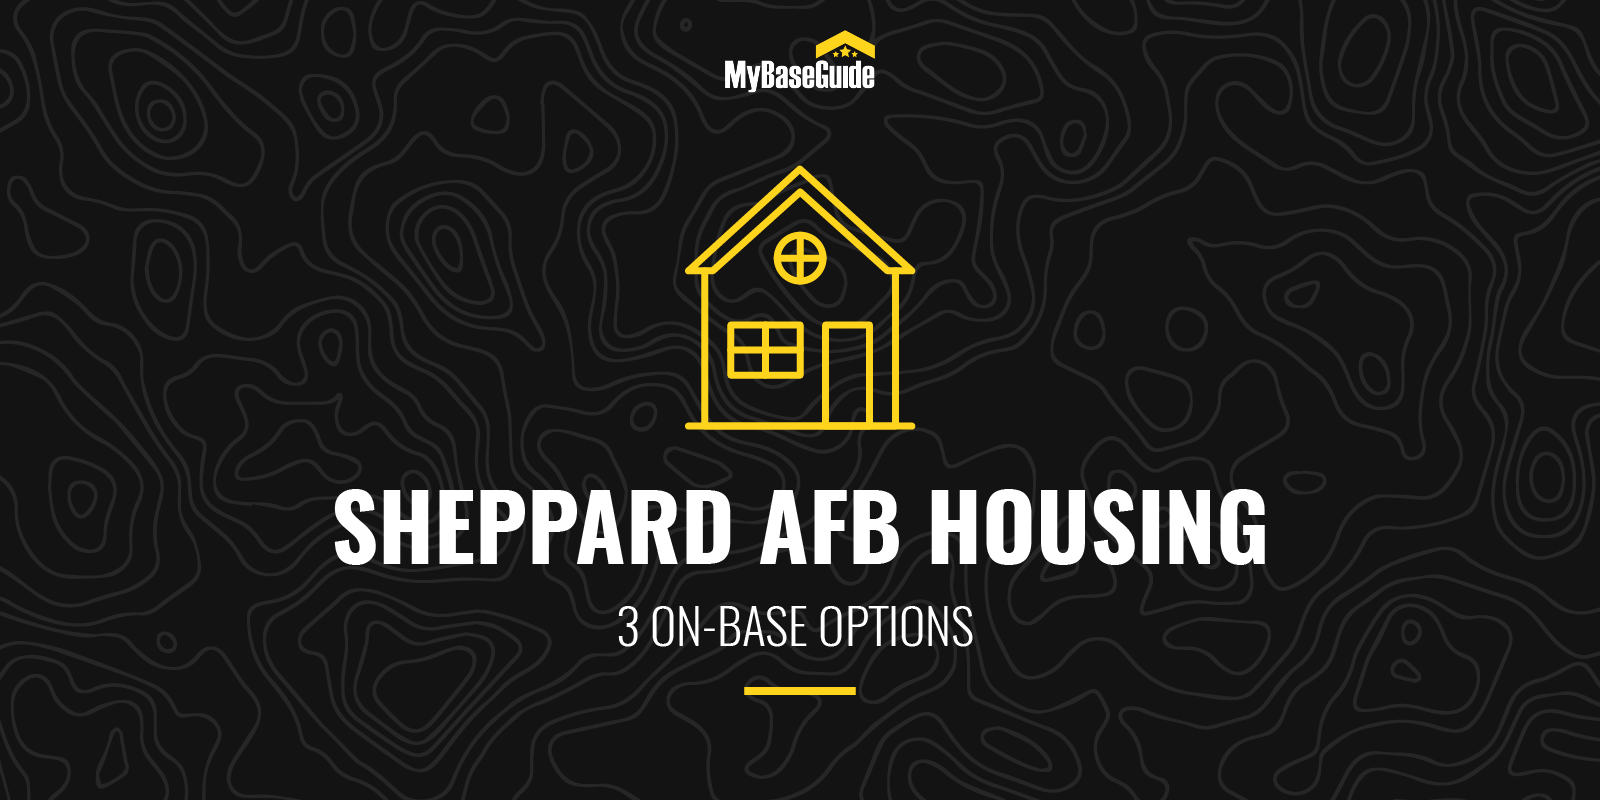 Sheppard AFB Housing: 3 On-Base Options